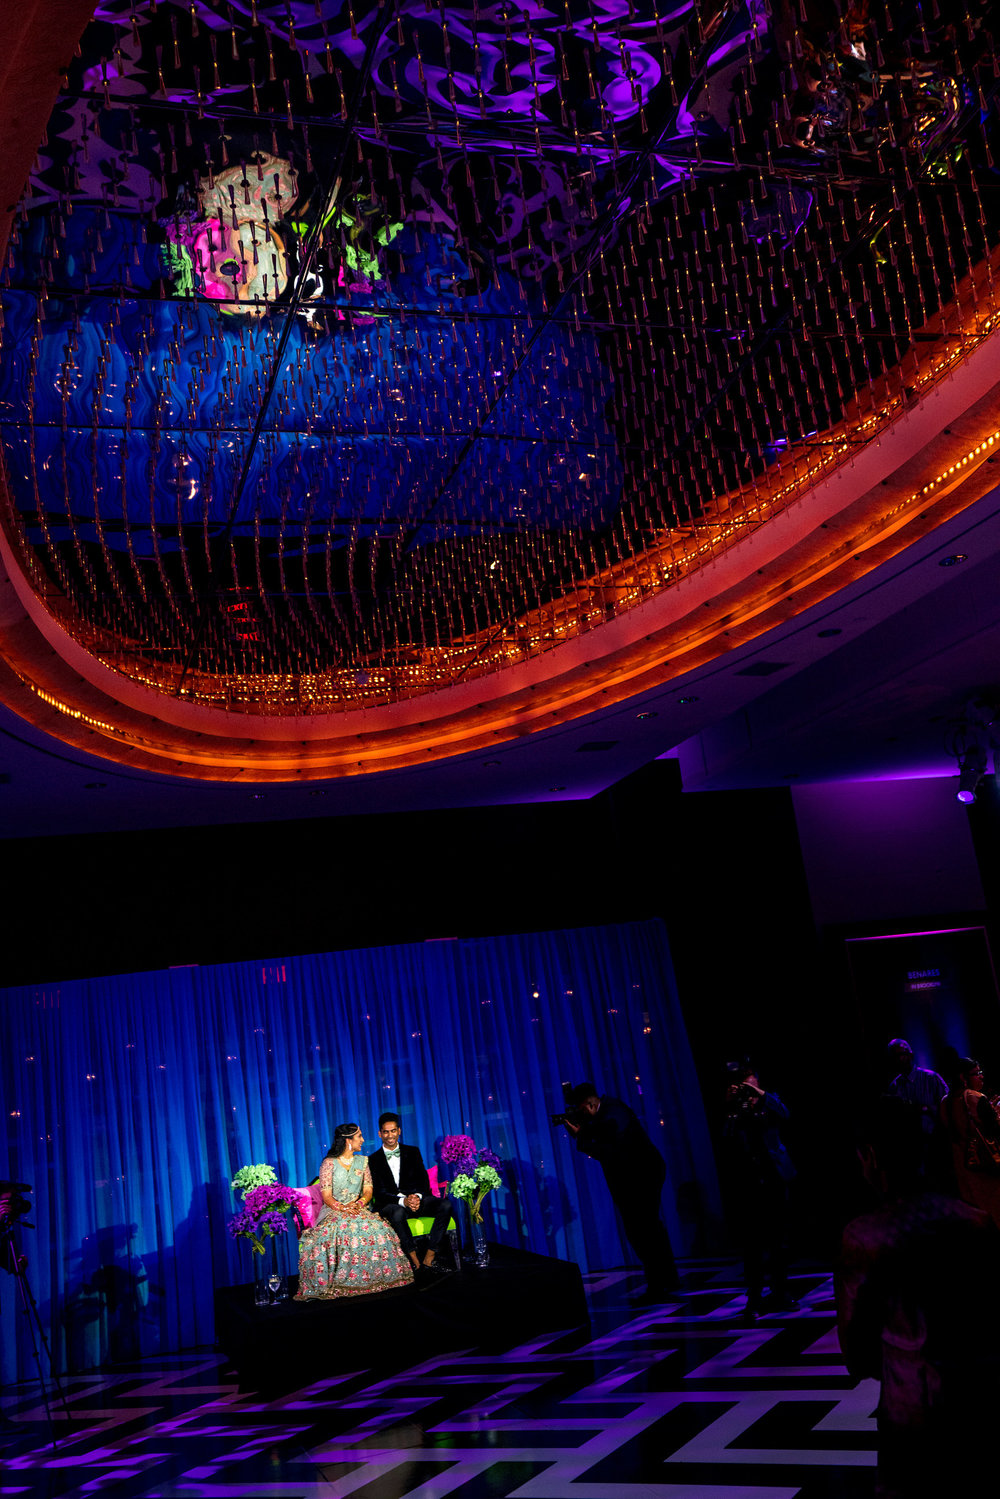 INDIAN WEDDING VENUE NEON DECOR.JPG